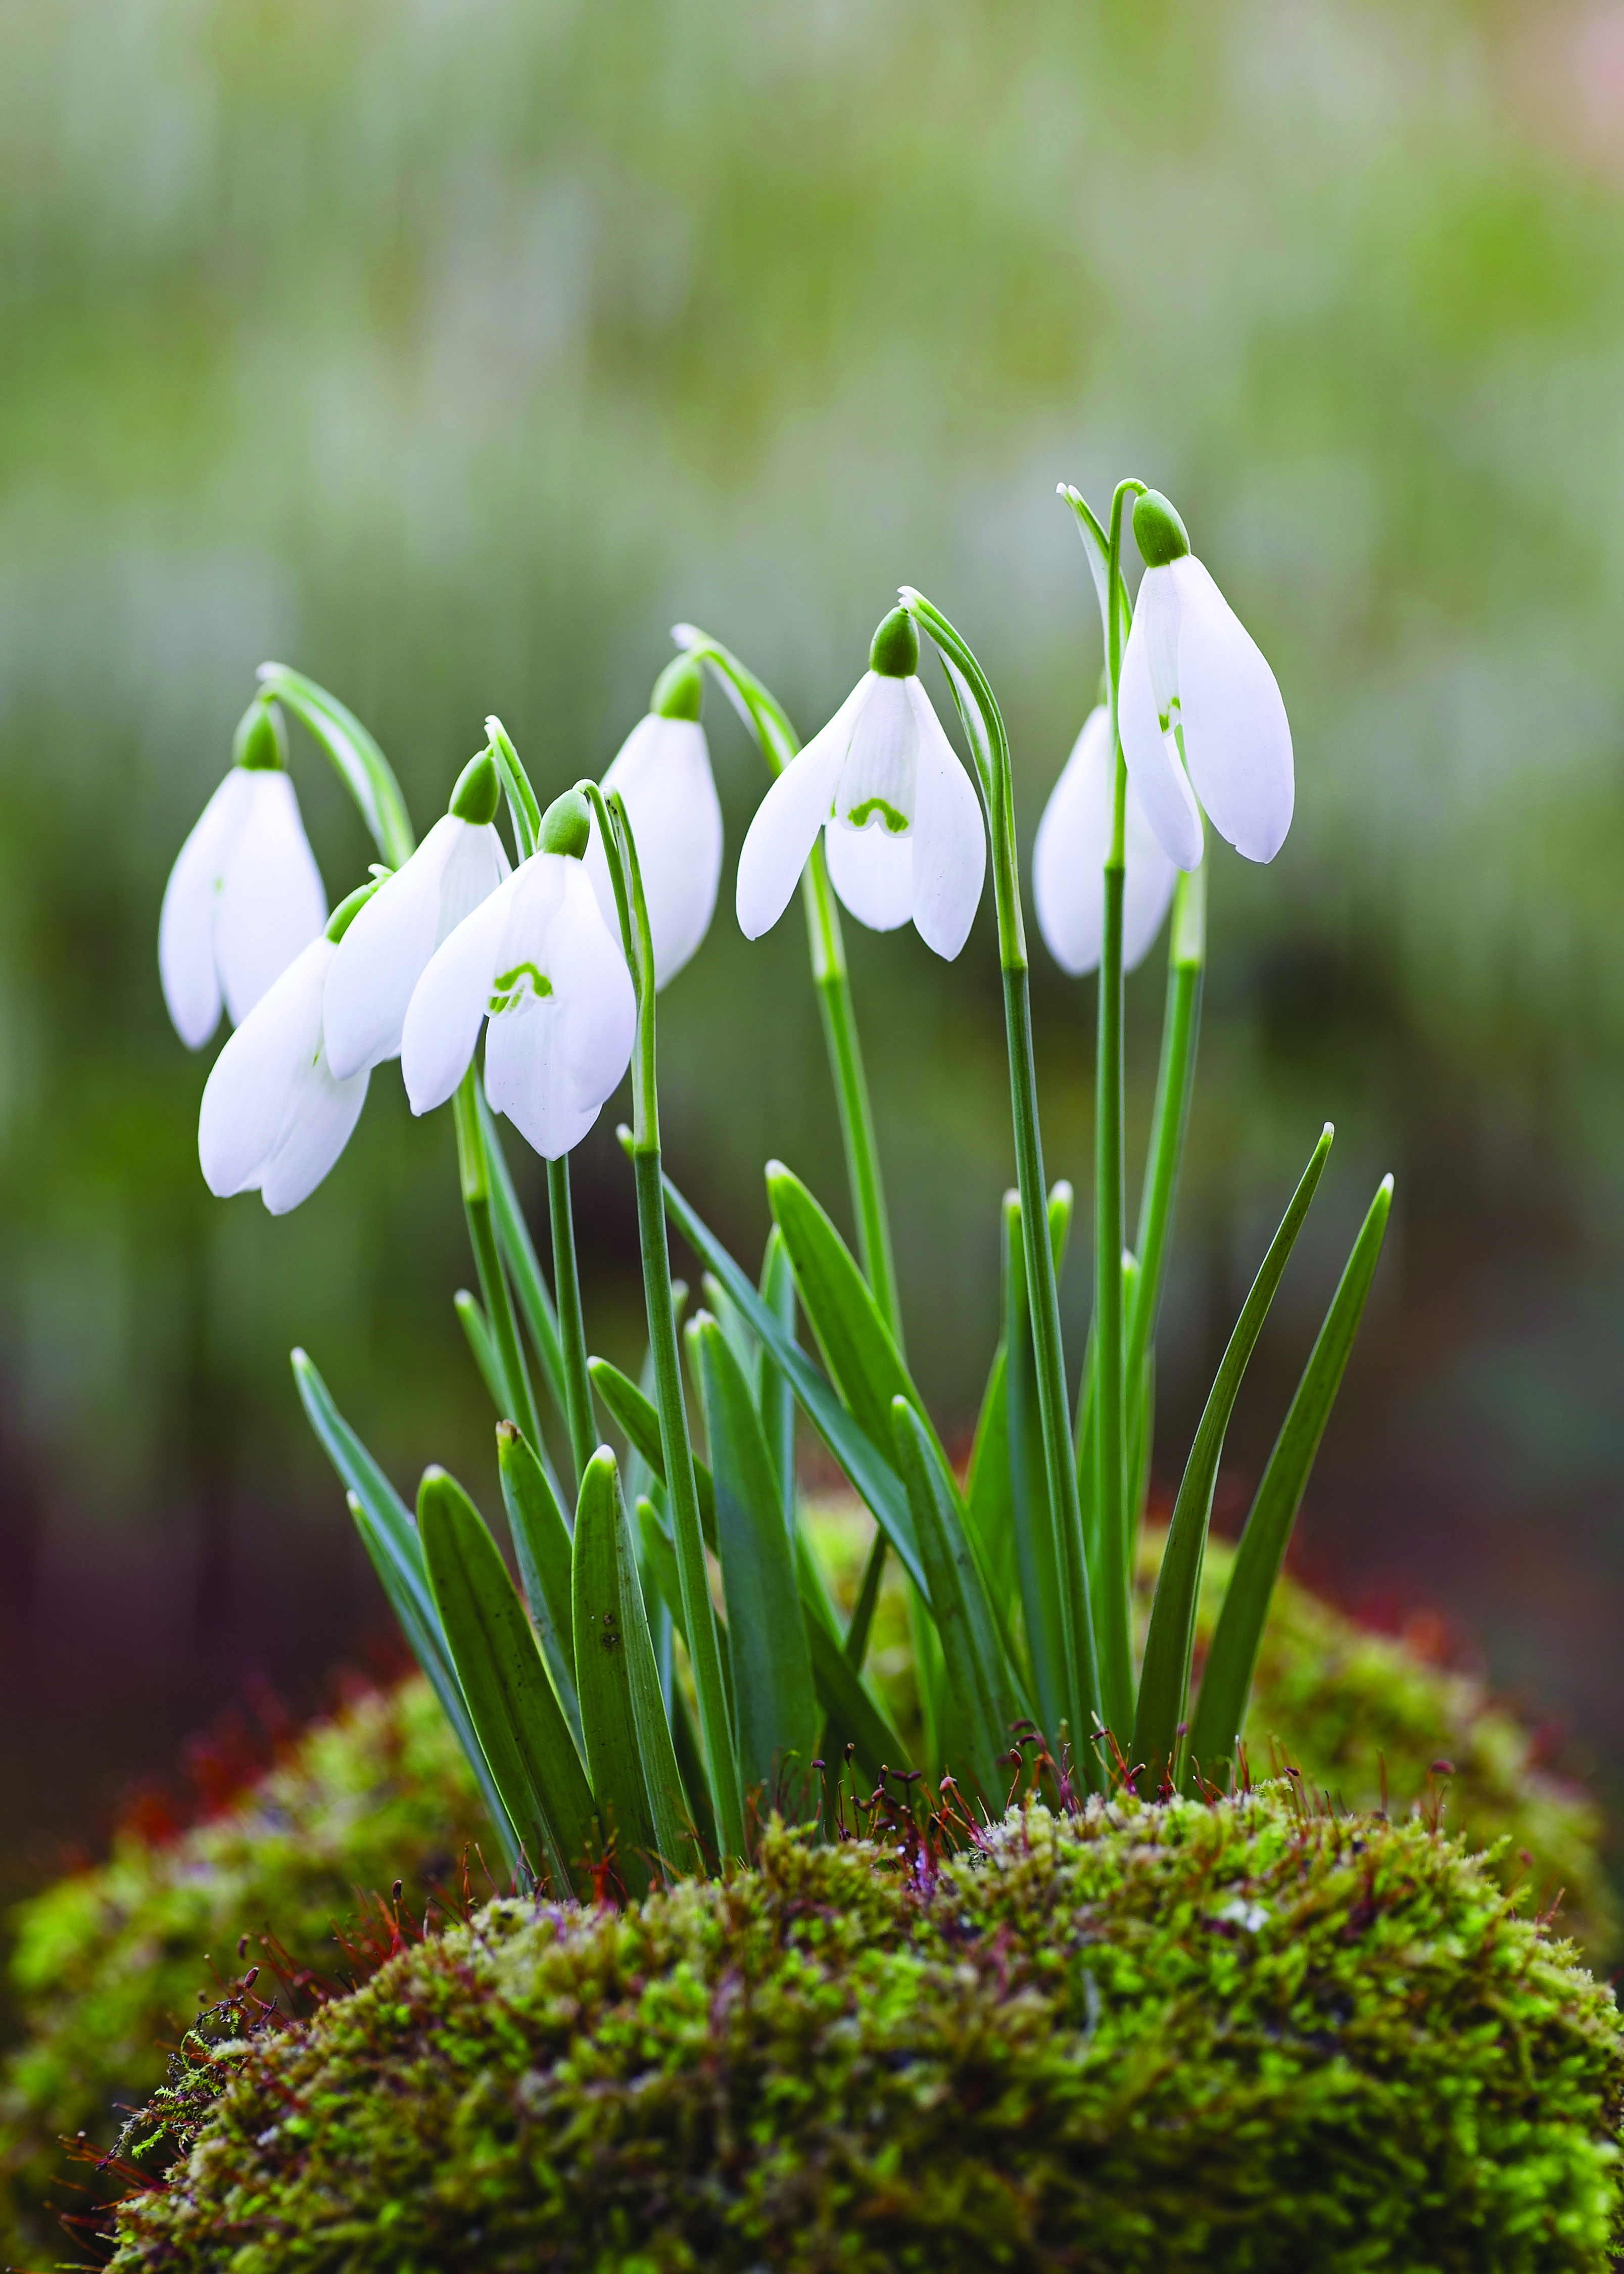 Galanthus Nivalis Snowdrops Available Online At Barlow S Sea Girt Nj Snow Drops Flowers Plants Spring Flowers